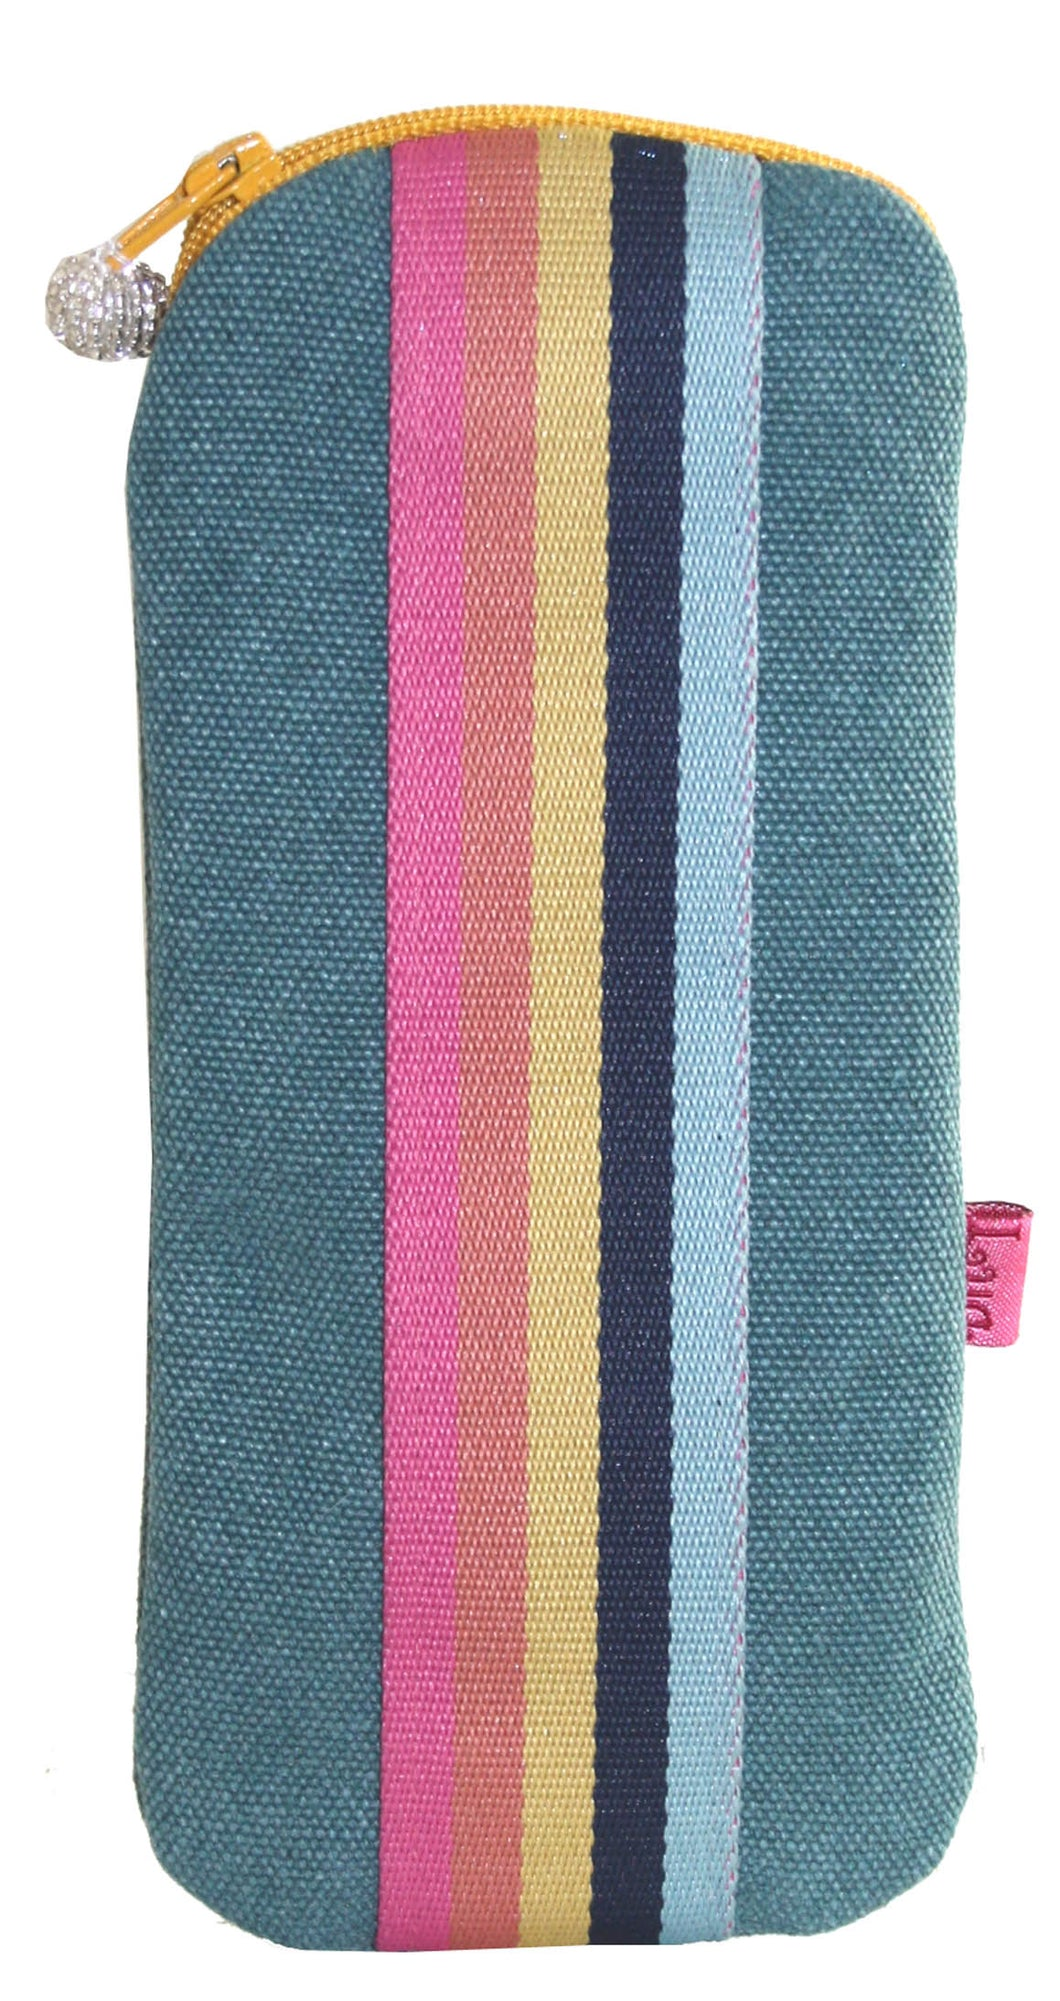 Canvas Stripe Glasses Case - Teal